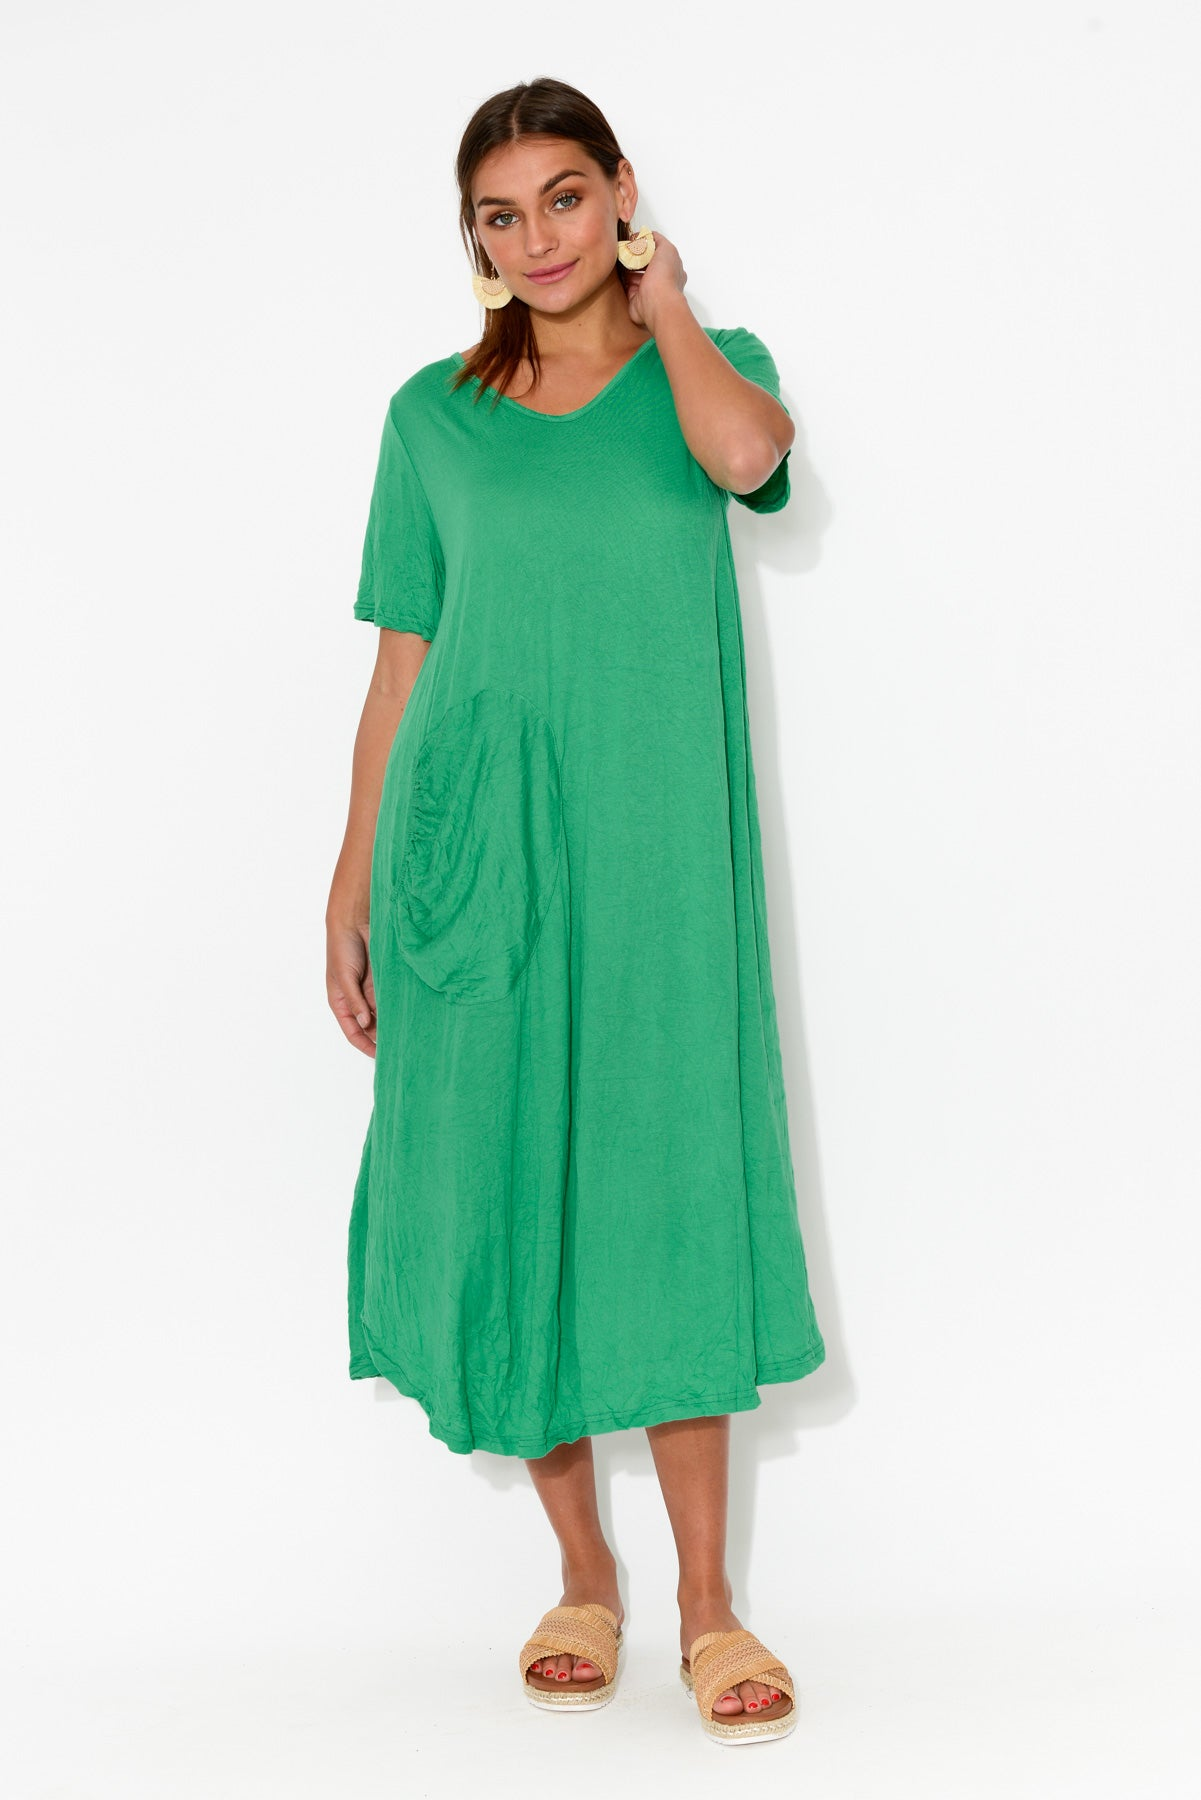 Green Gathered Pocket Cotton Dress - Blue Bungalow